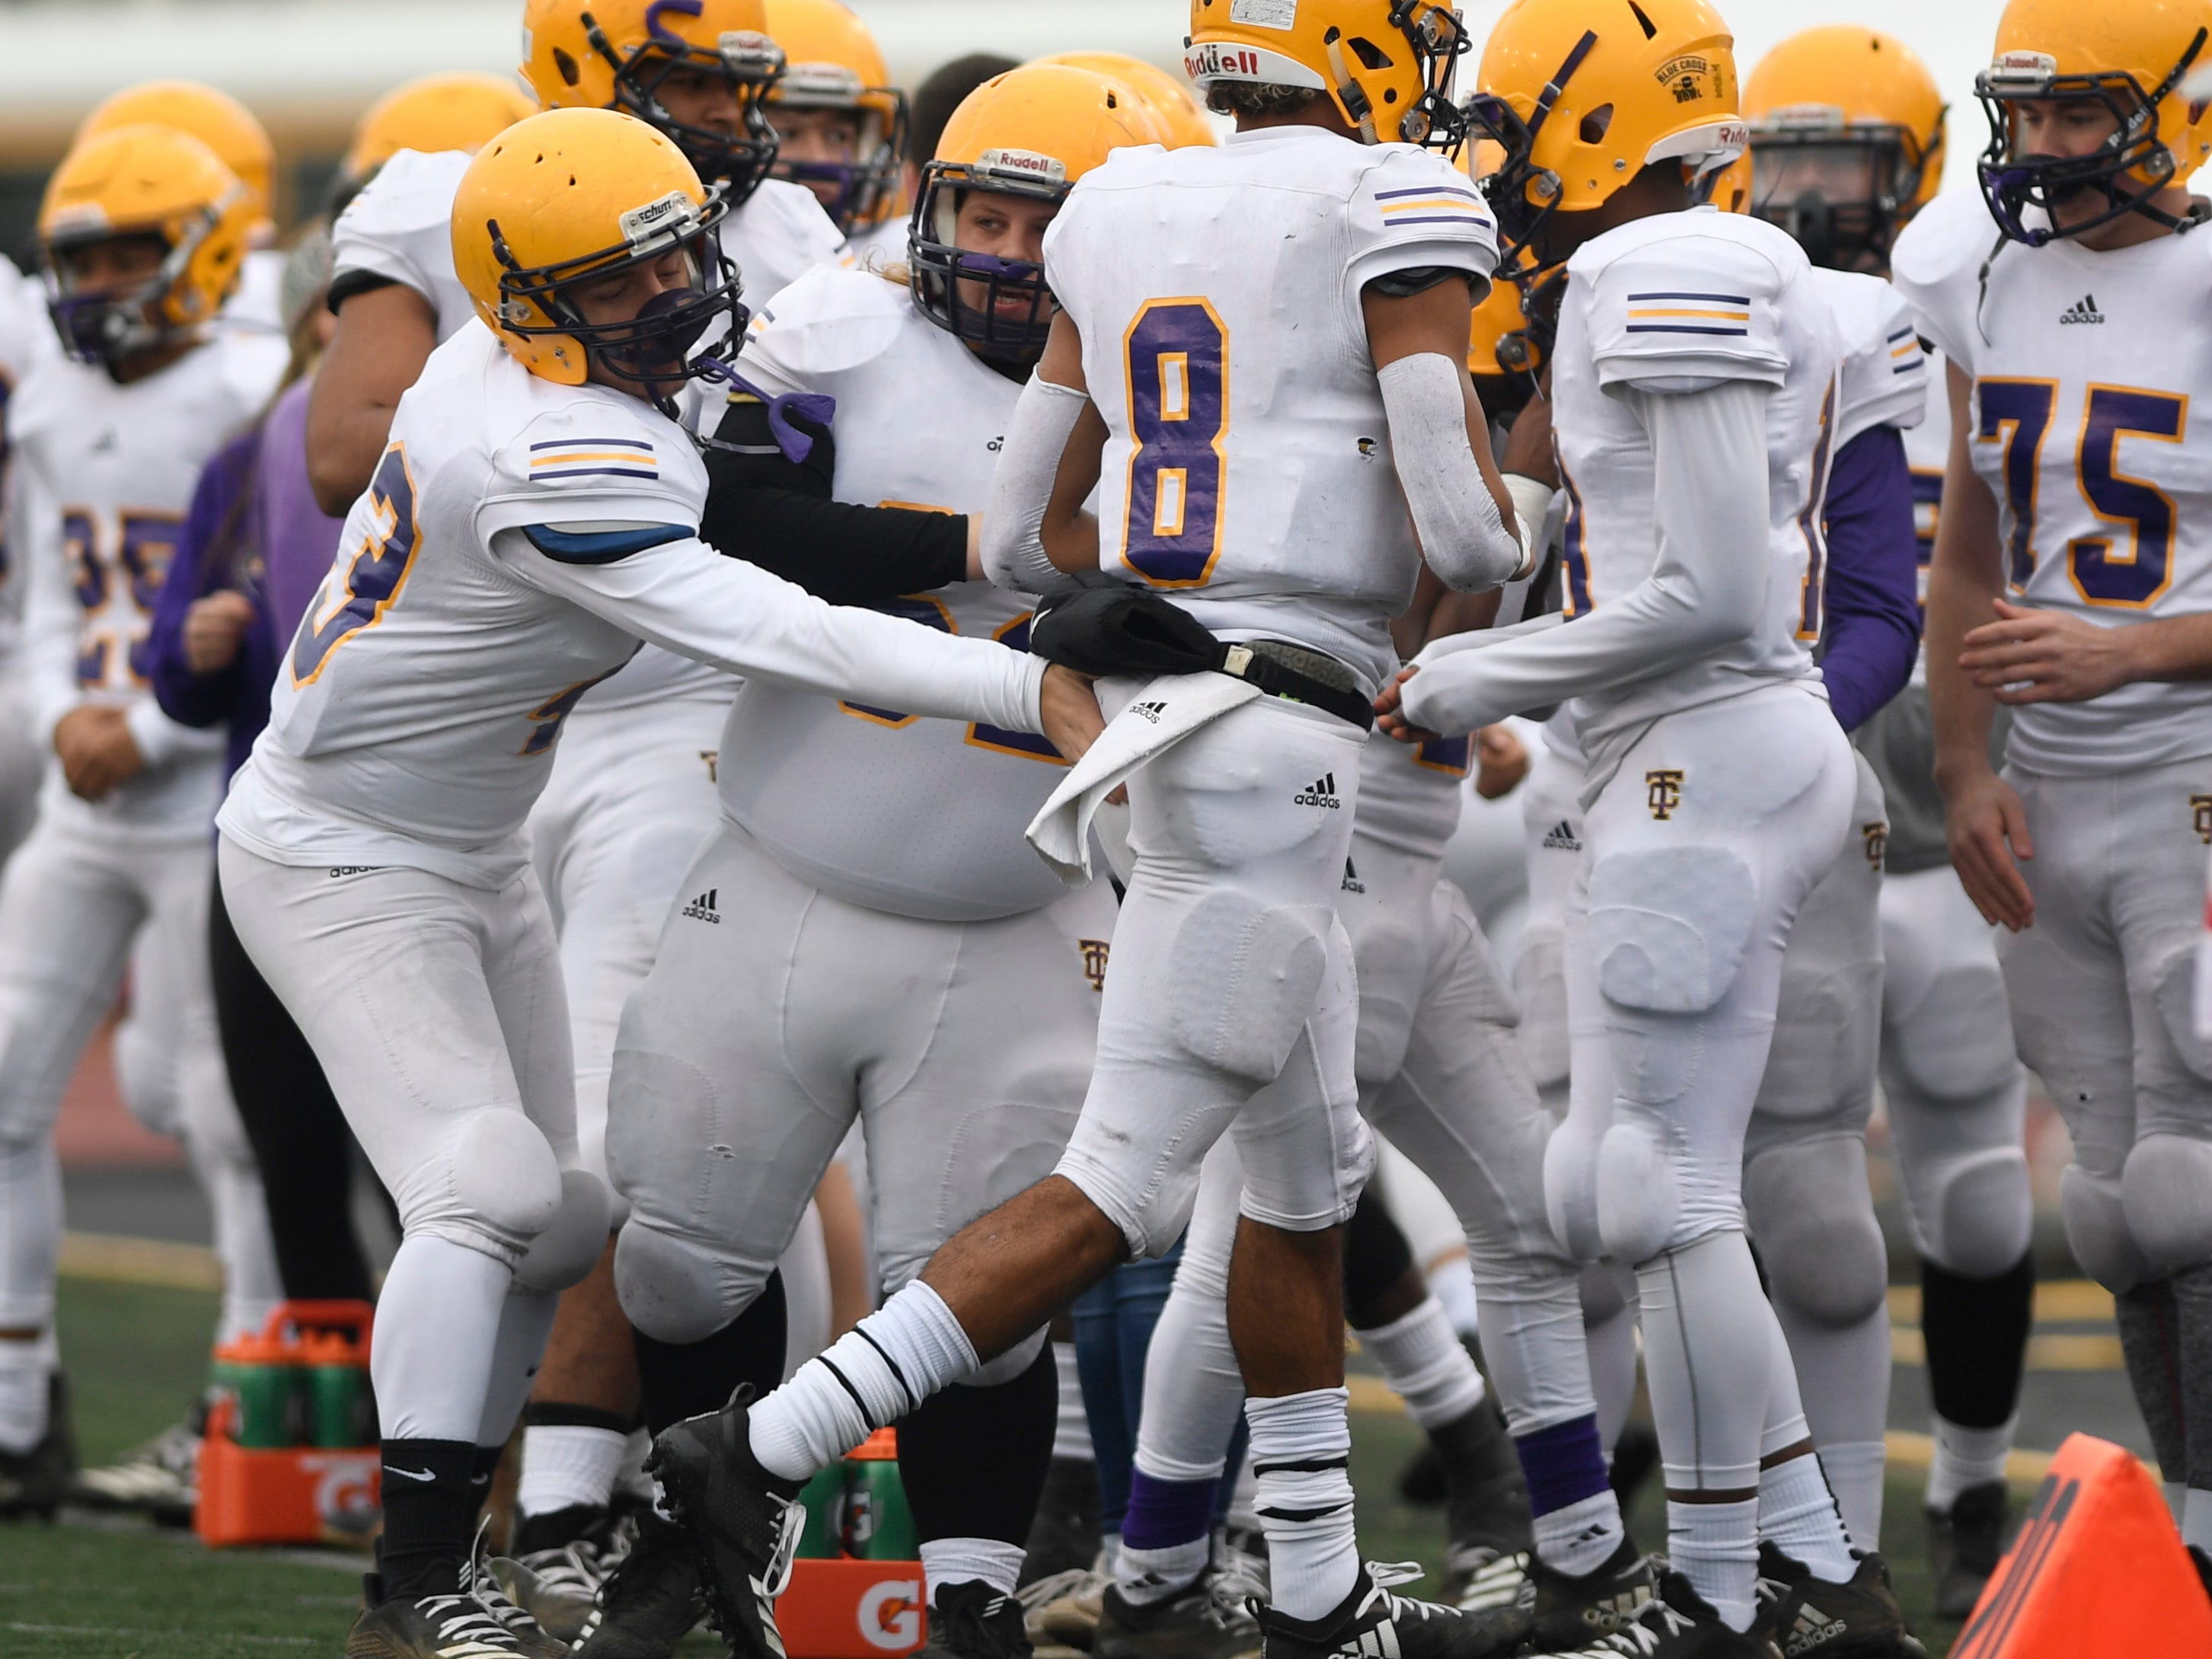 Trousdale's Keyvont Baines (8) is congratulated after his second quarter touchdown during the Class 2A BlueCross Bowl state championship at Tennessee Tech's Tucker Stadium in Cookeville, Tenn., on Thursday, Nov. 29, 2018.